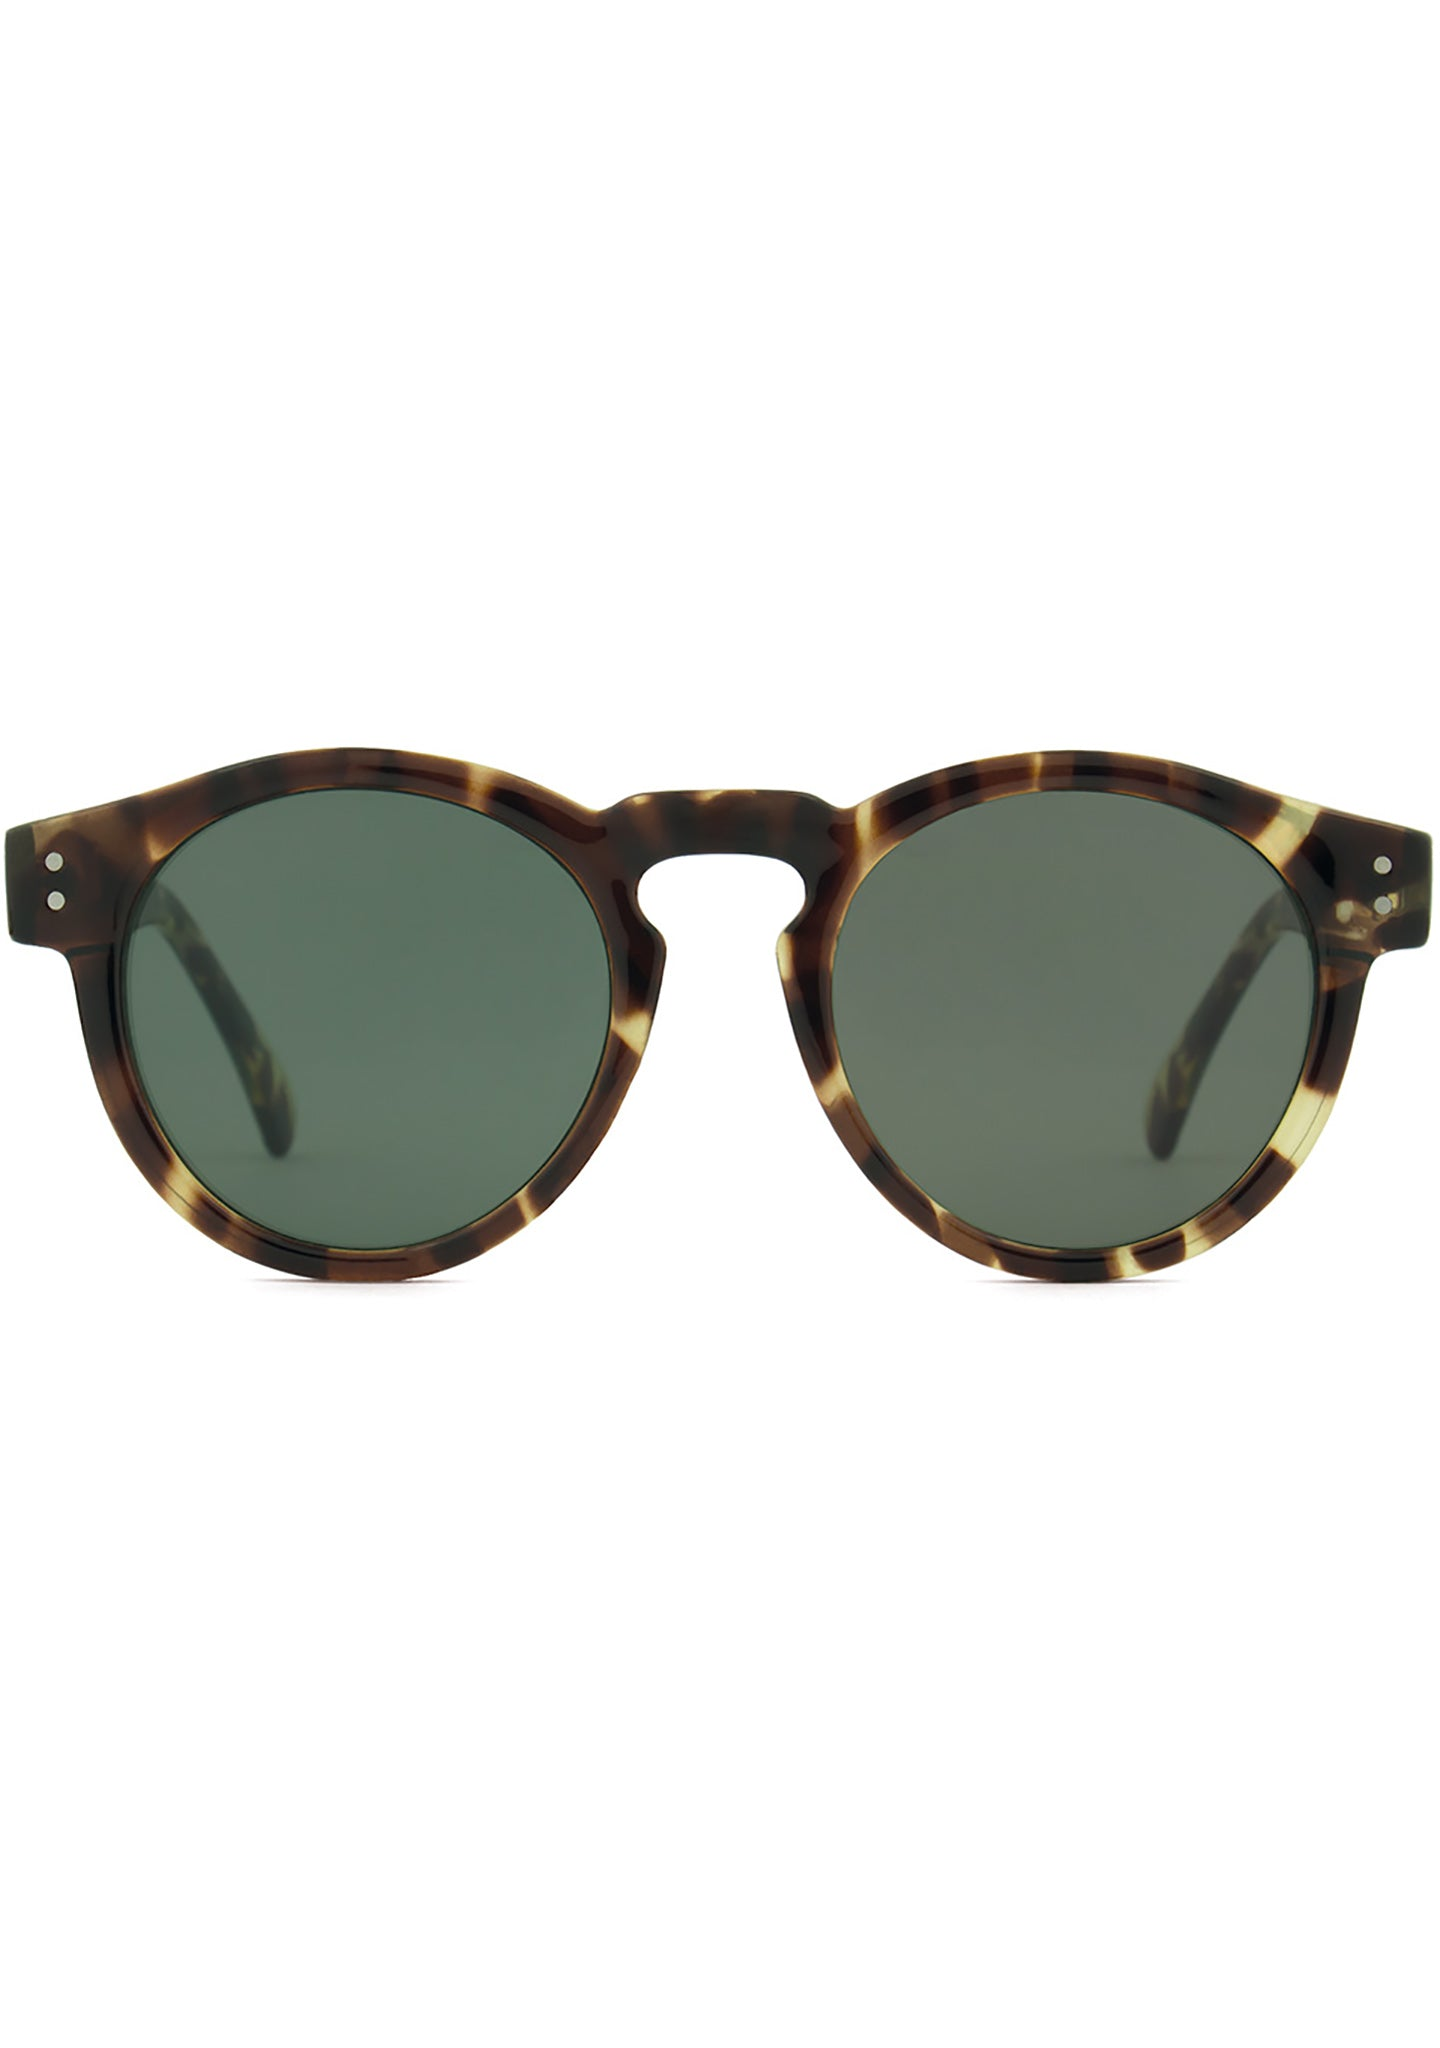 KOMONO Clement Sunglasses in Tortoise